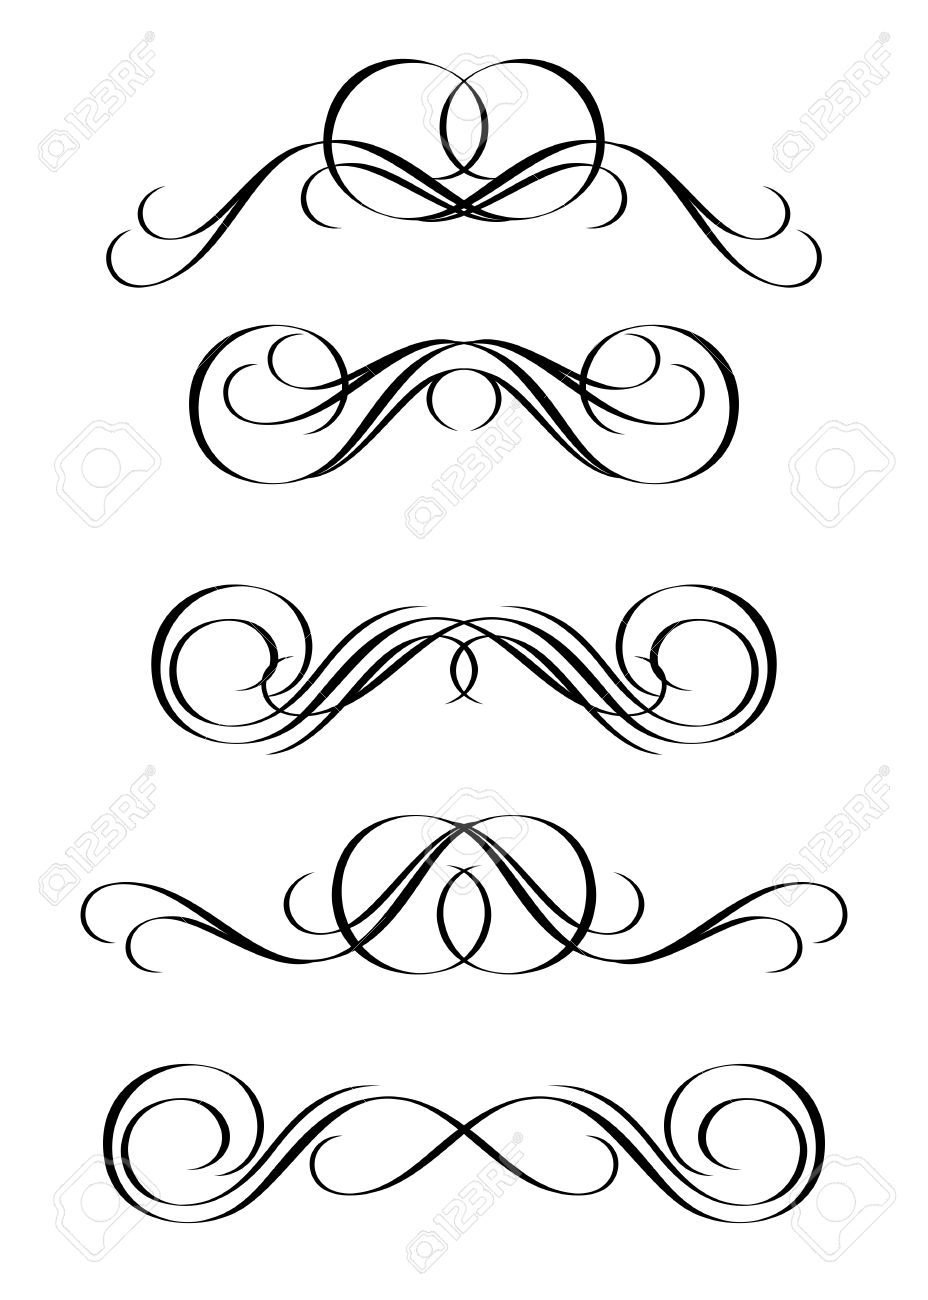 5 versions of abstract ornament in vintage style Stock Vector - 3404656